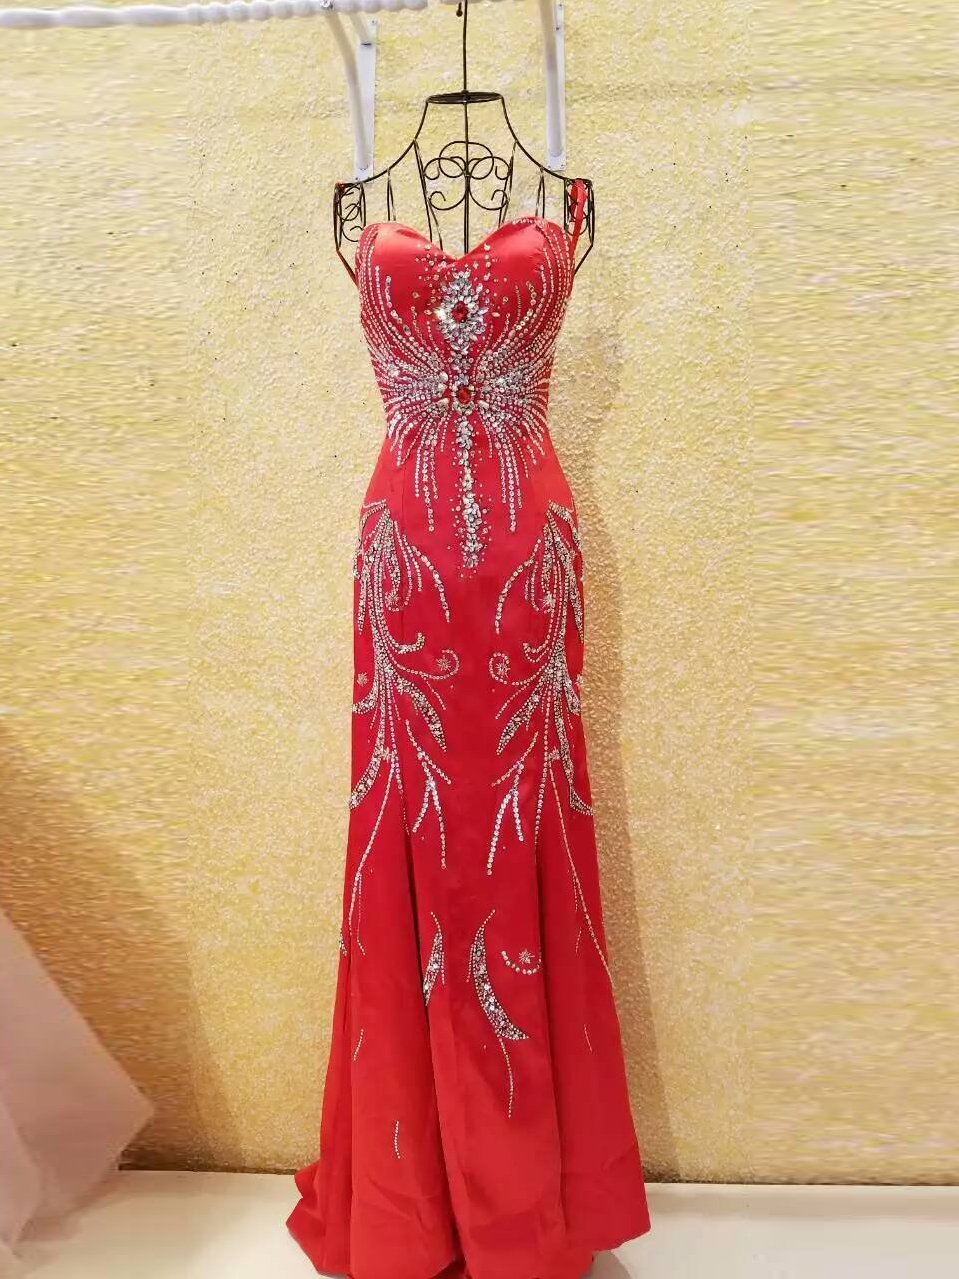 Red Chic Prom Dresses Sheath Column Short Train Prom Dresses,PD4558989